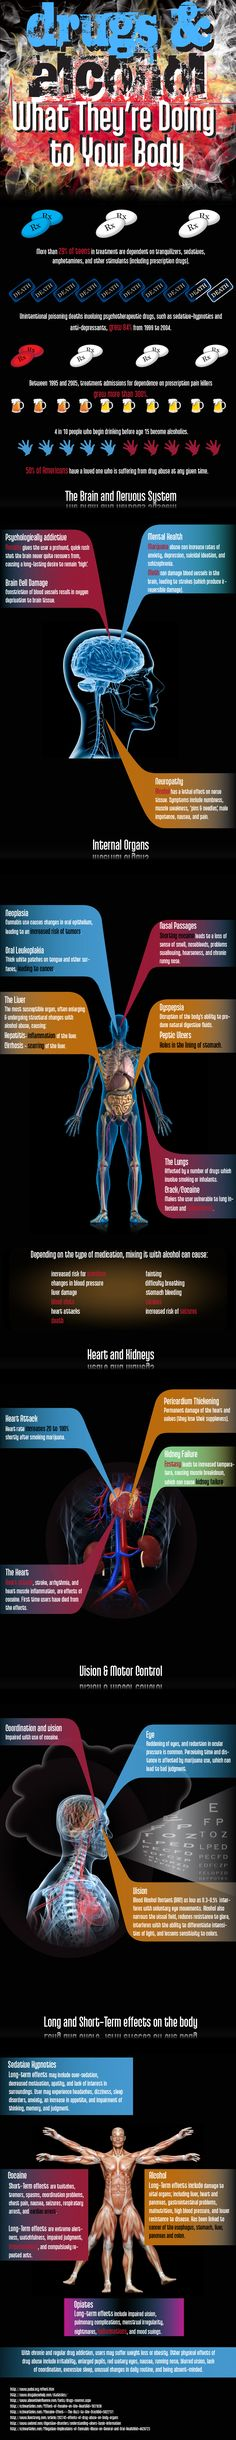 Drugs + Your Body    www.thewatershed.com    #Addiction #drugs #Alcohol